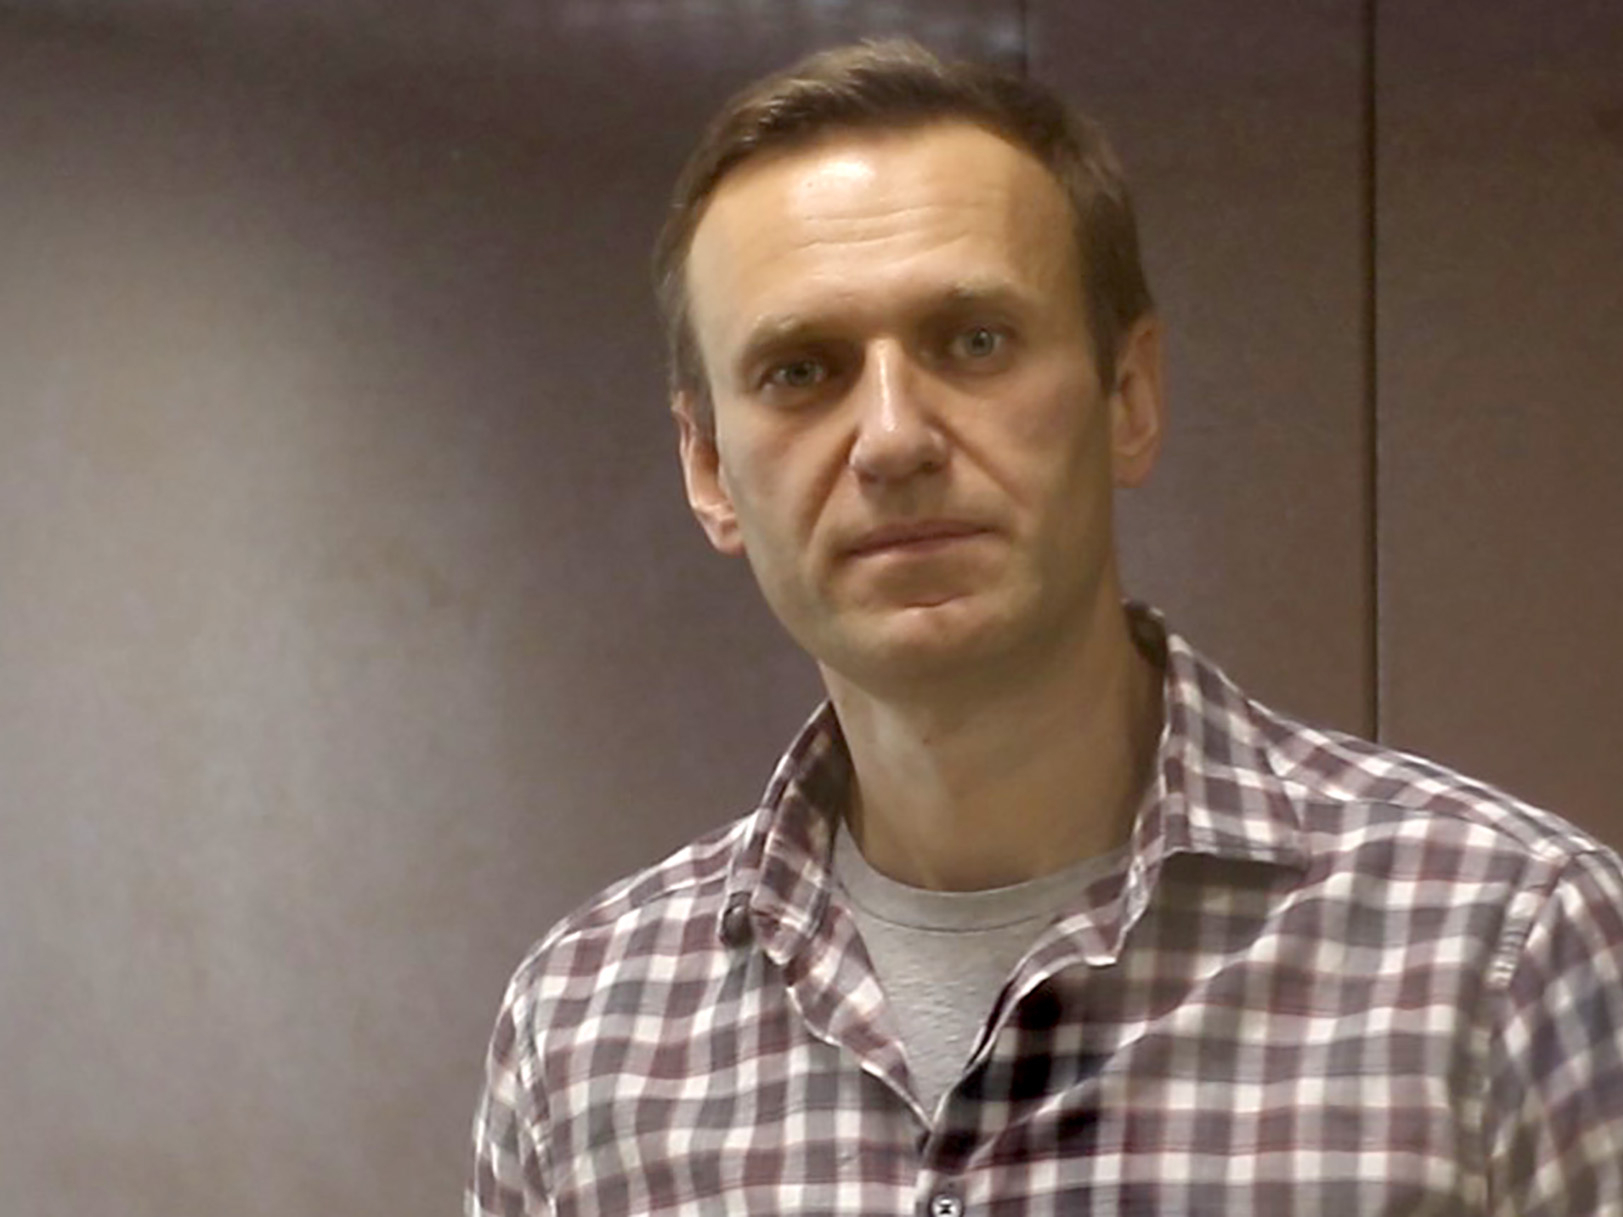 White House Slaps Sanctions On Russia Over Navalny Poisoning